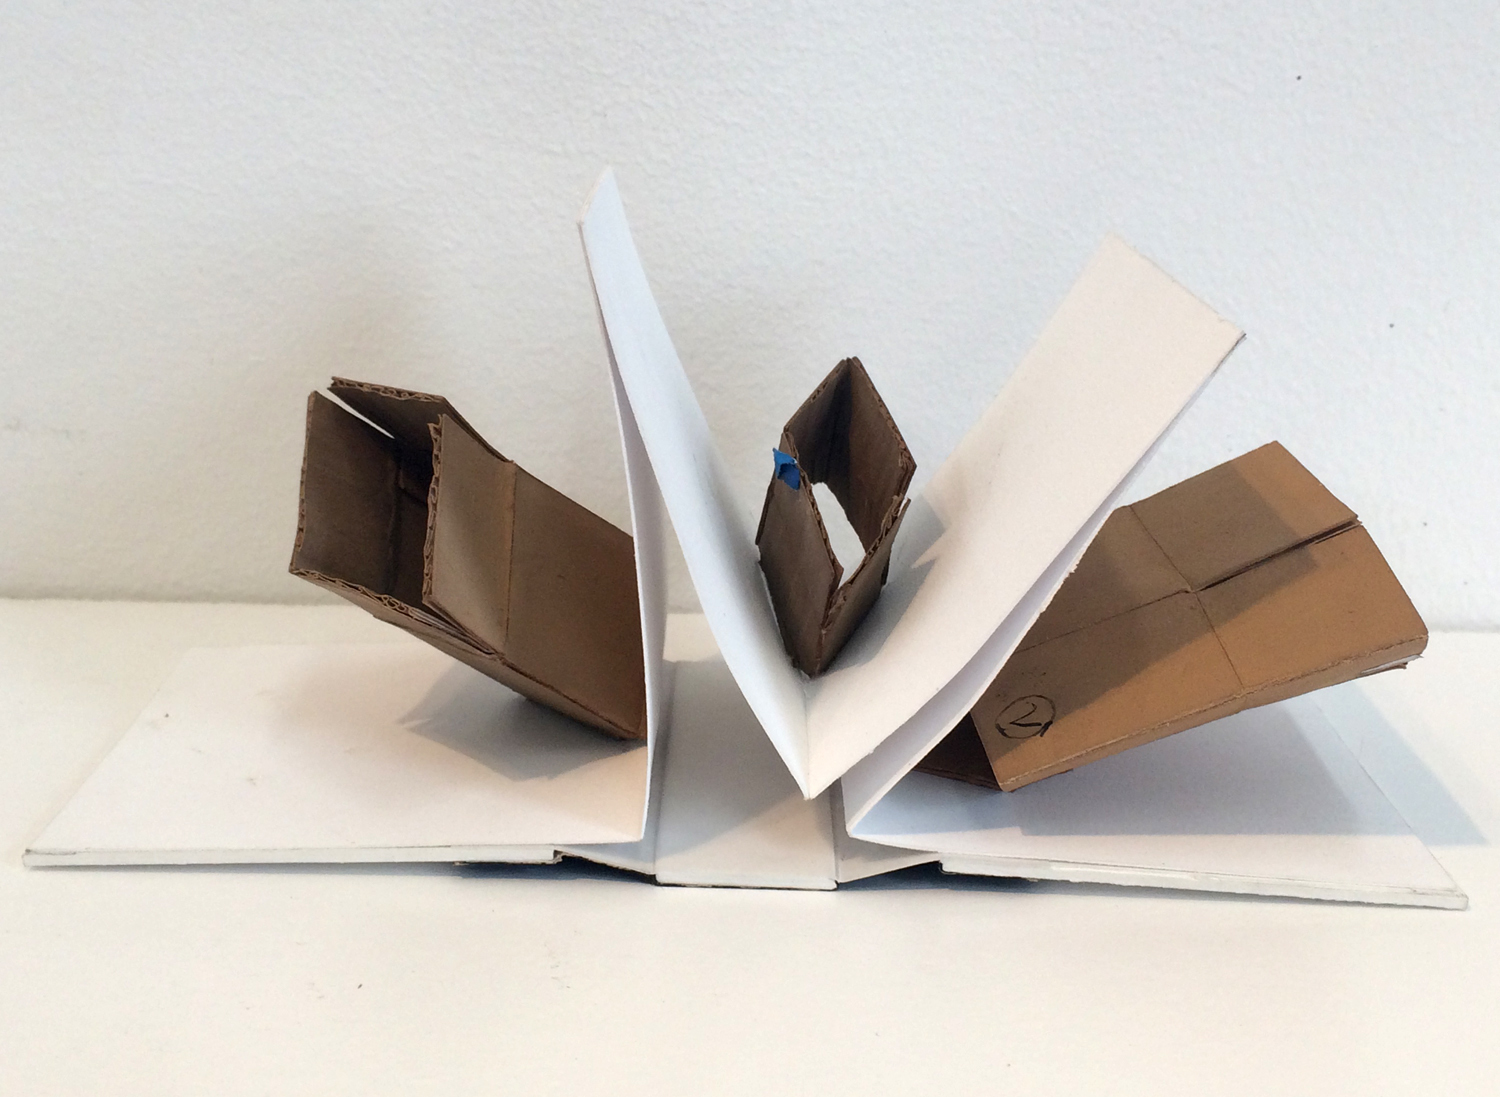 piles, boxes & containers Boxes (Pop-up book)